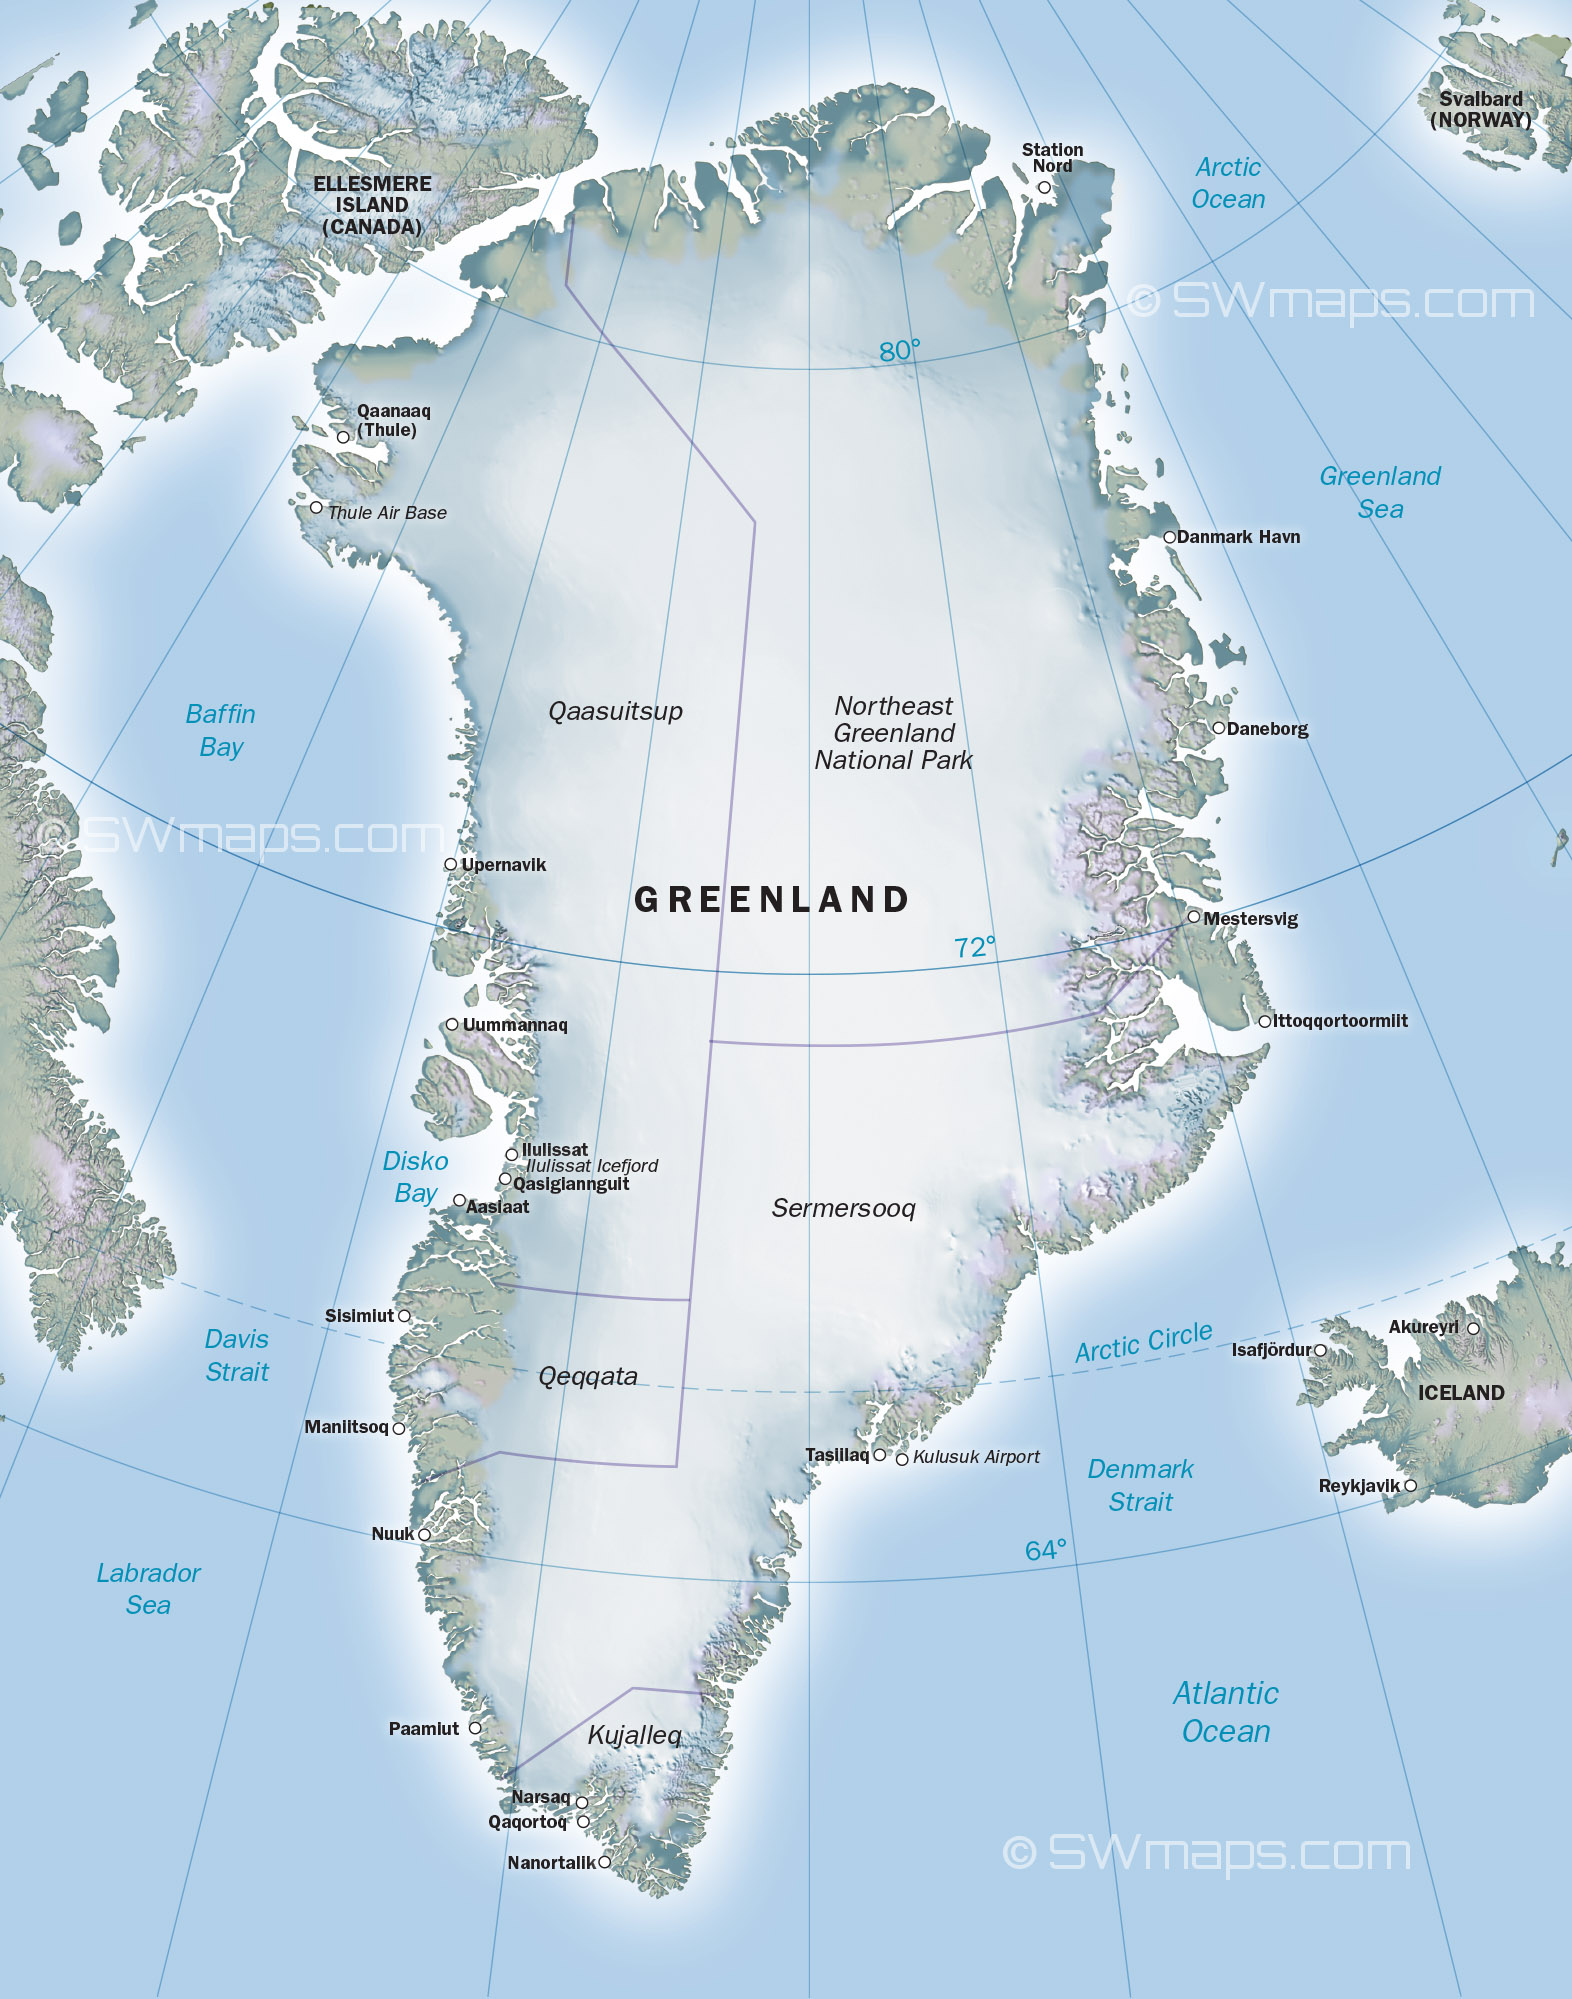 Iceland And Greenland World Map.Maps Of Greenland And Iceland Picture Gallery For Website With Maps